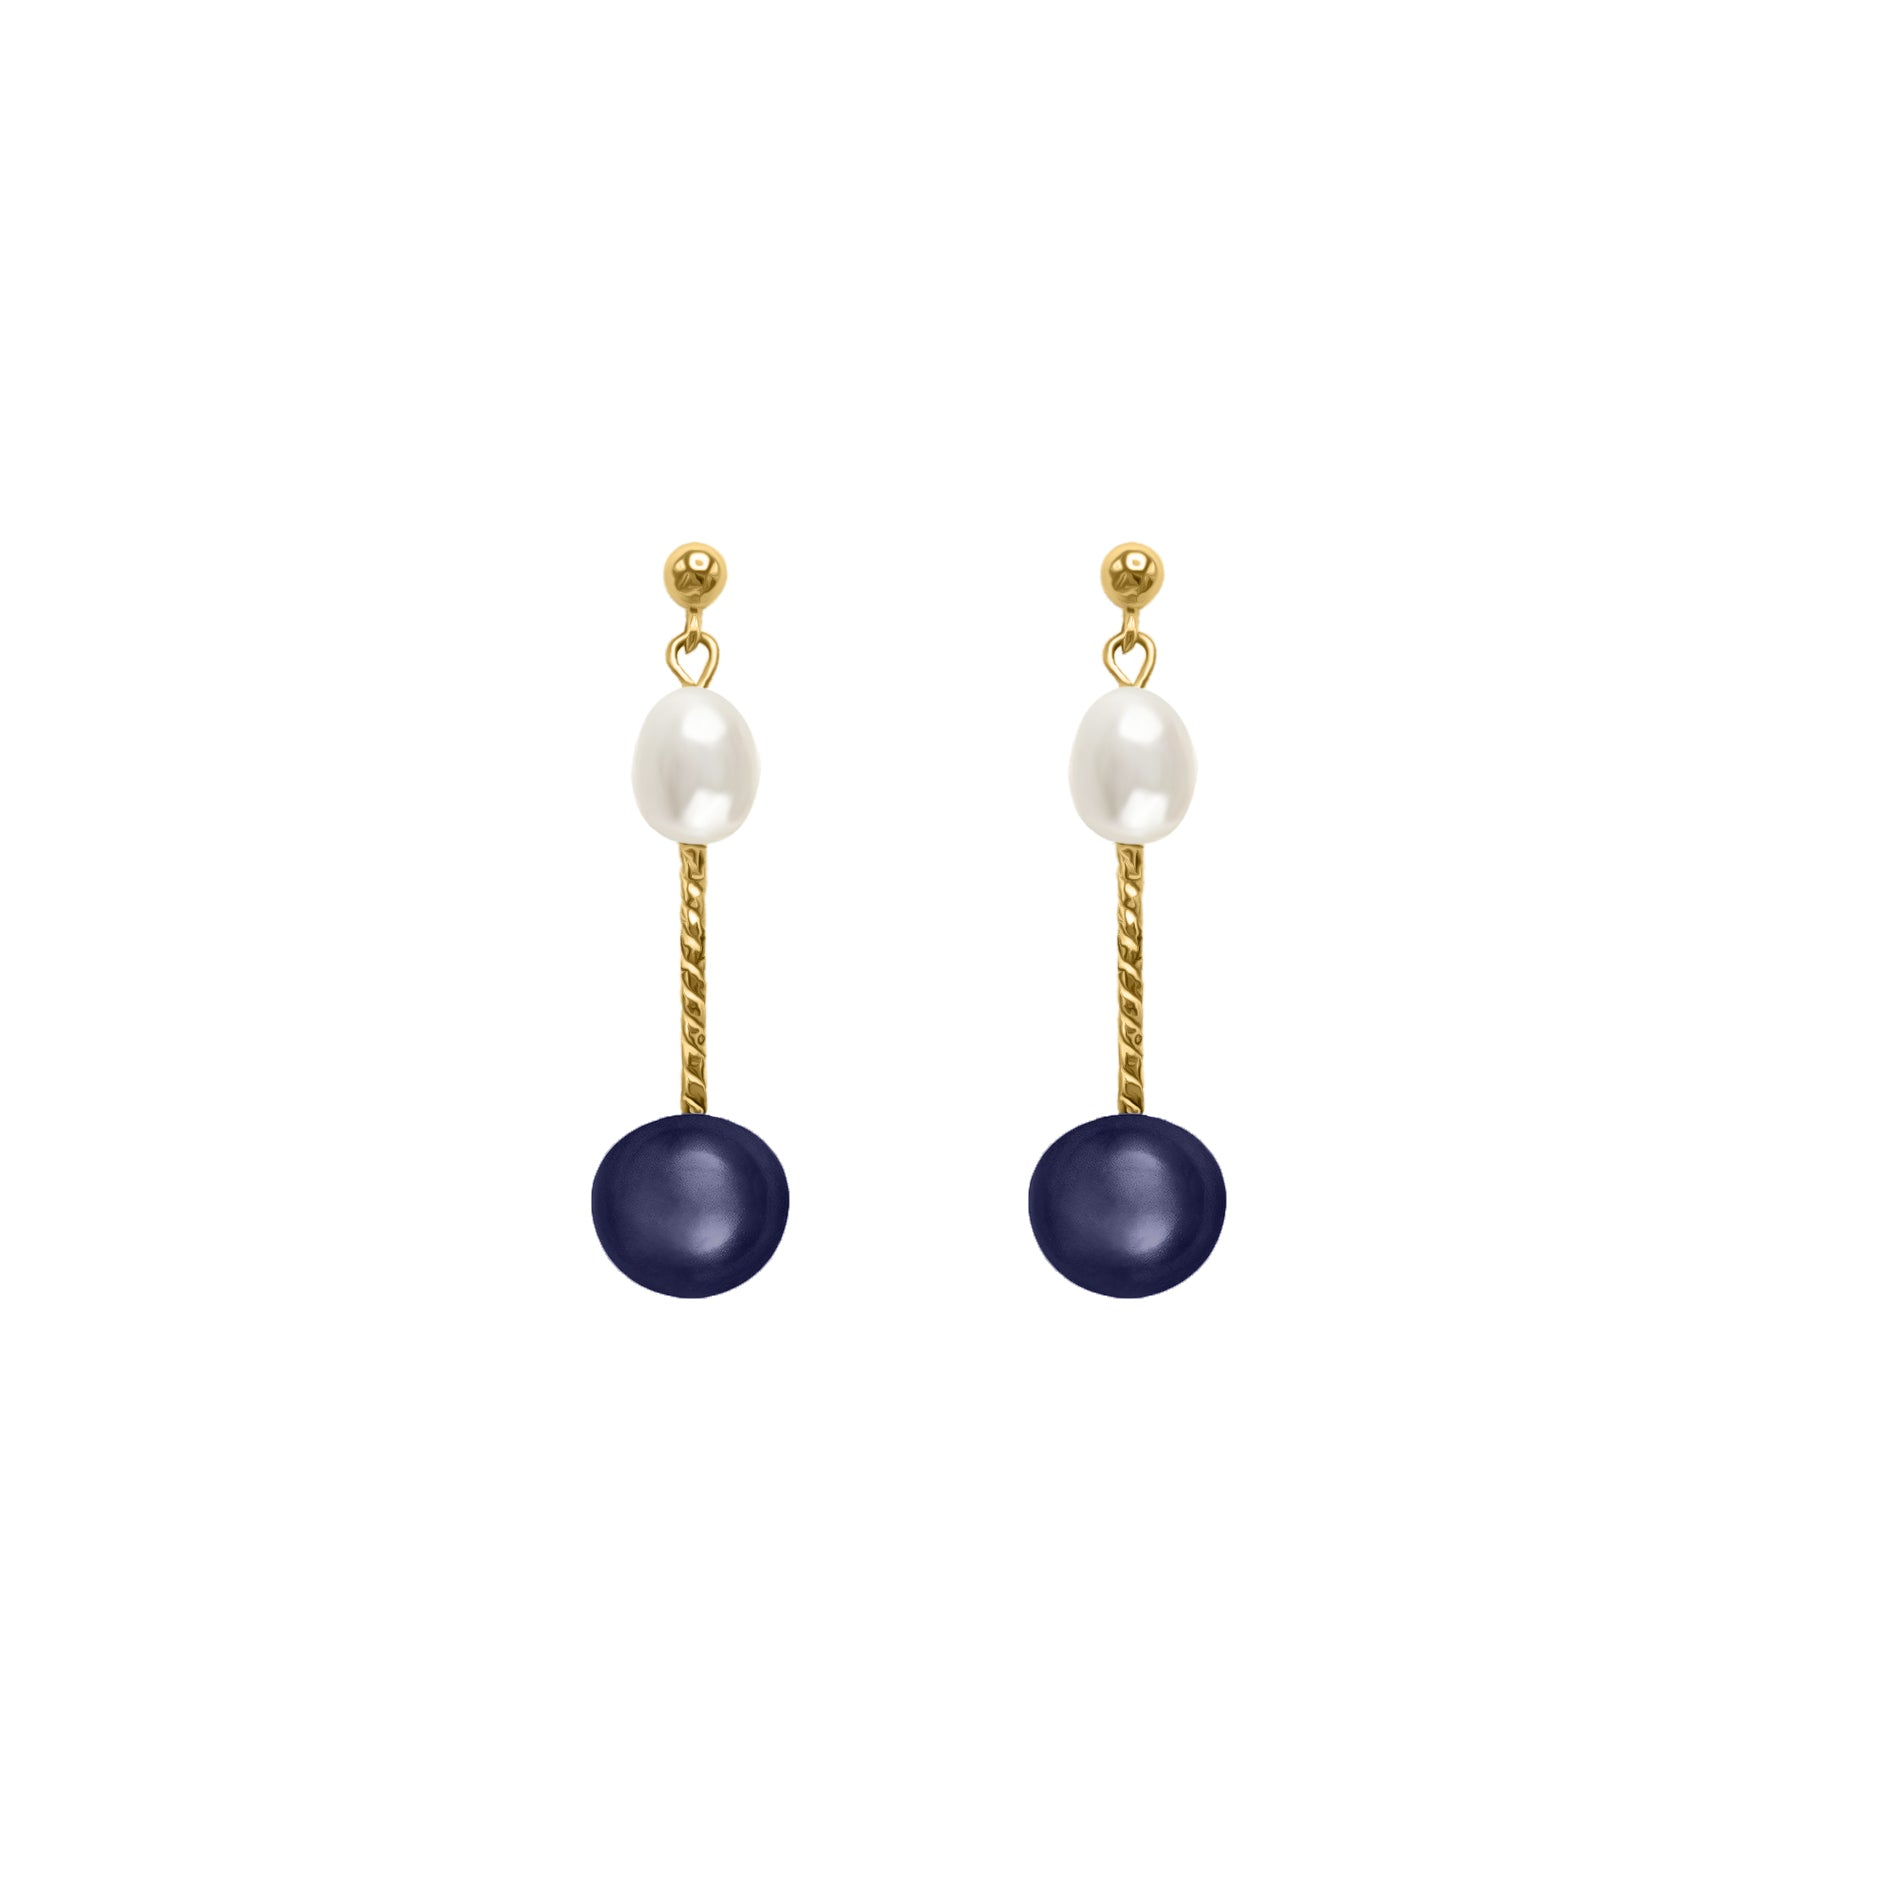 Black and White pearl + GF earring